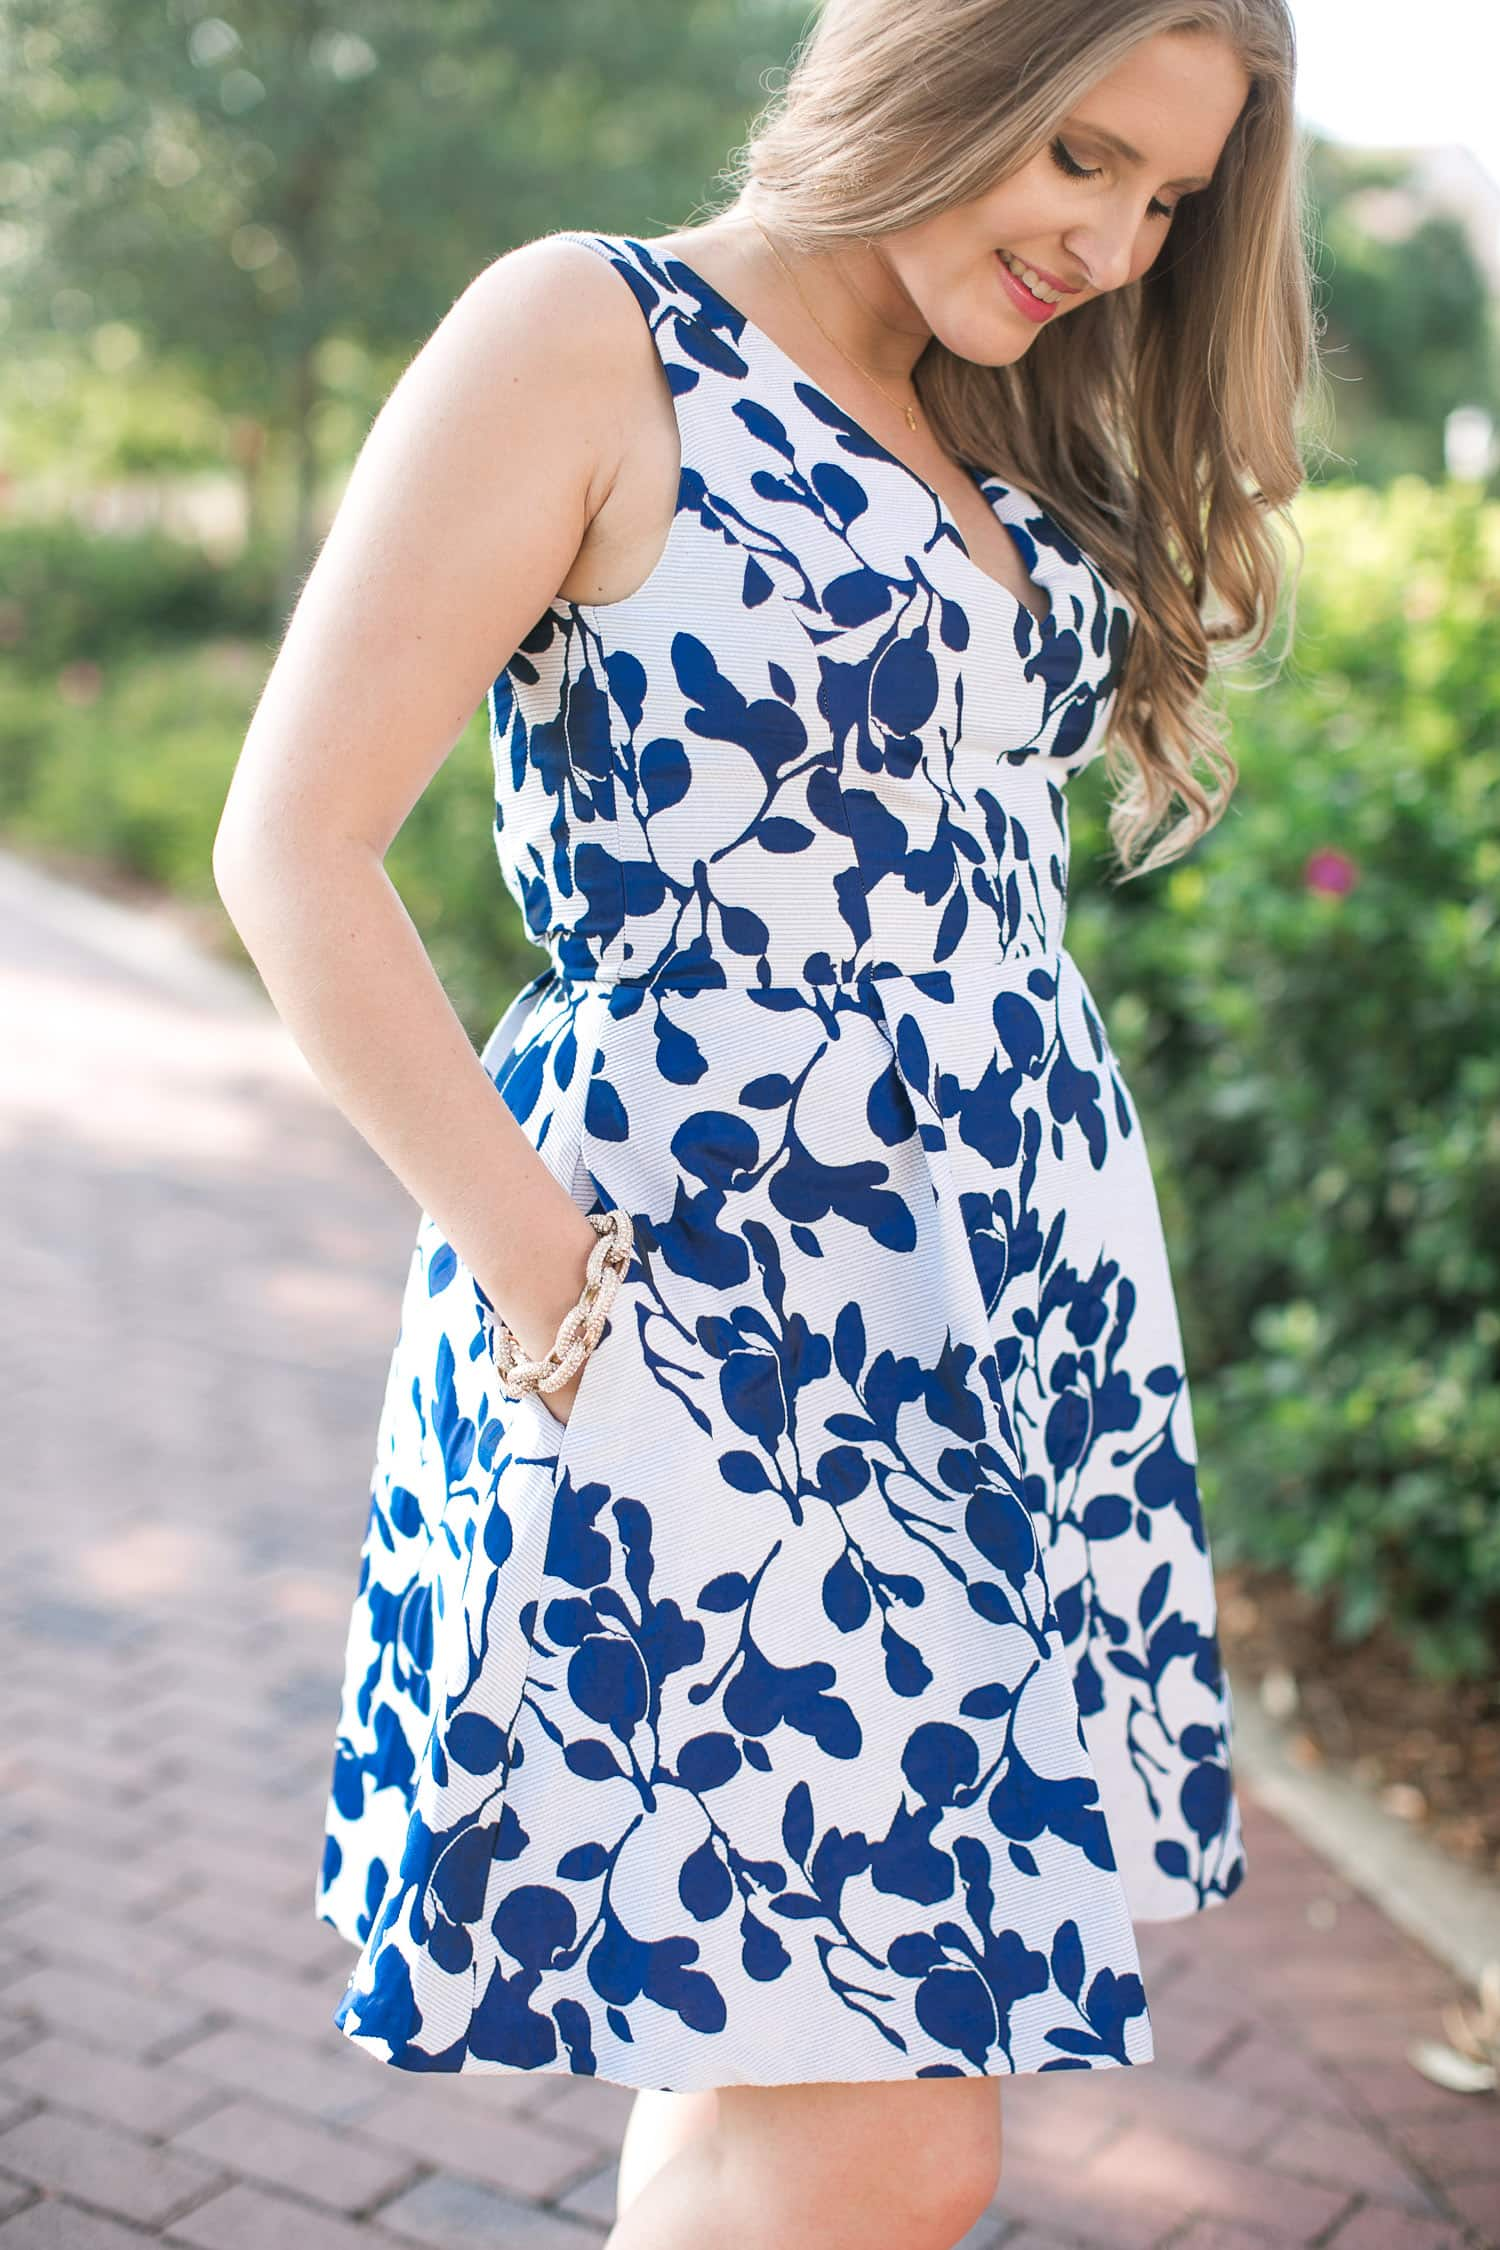 bfab9ca631 The perfect floral fit and flare dress